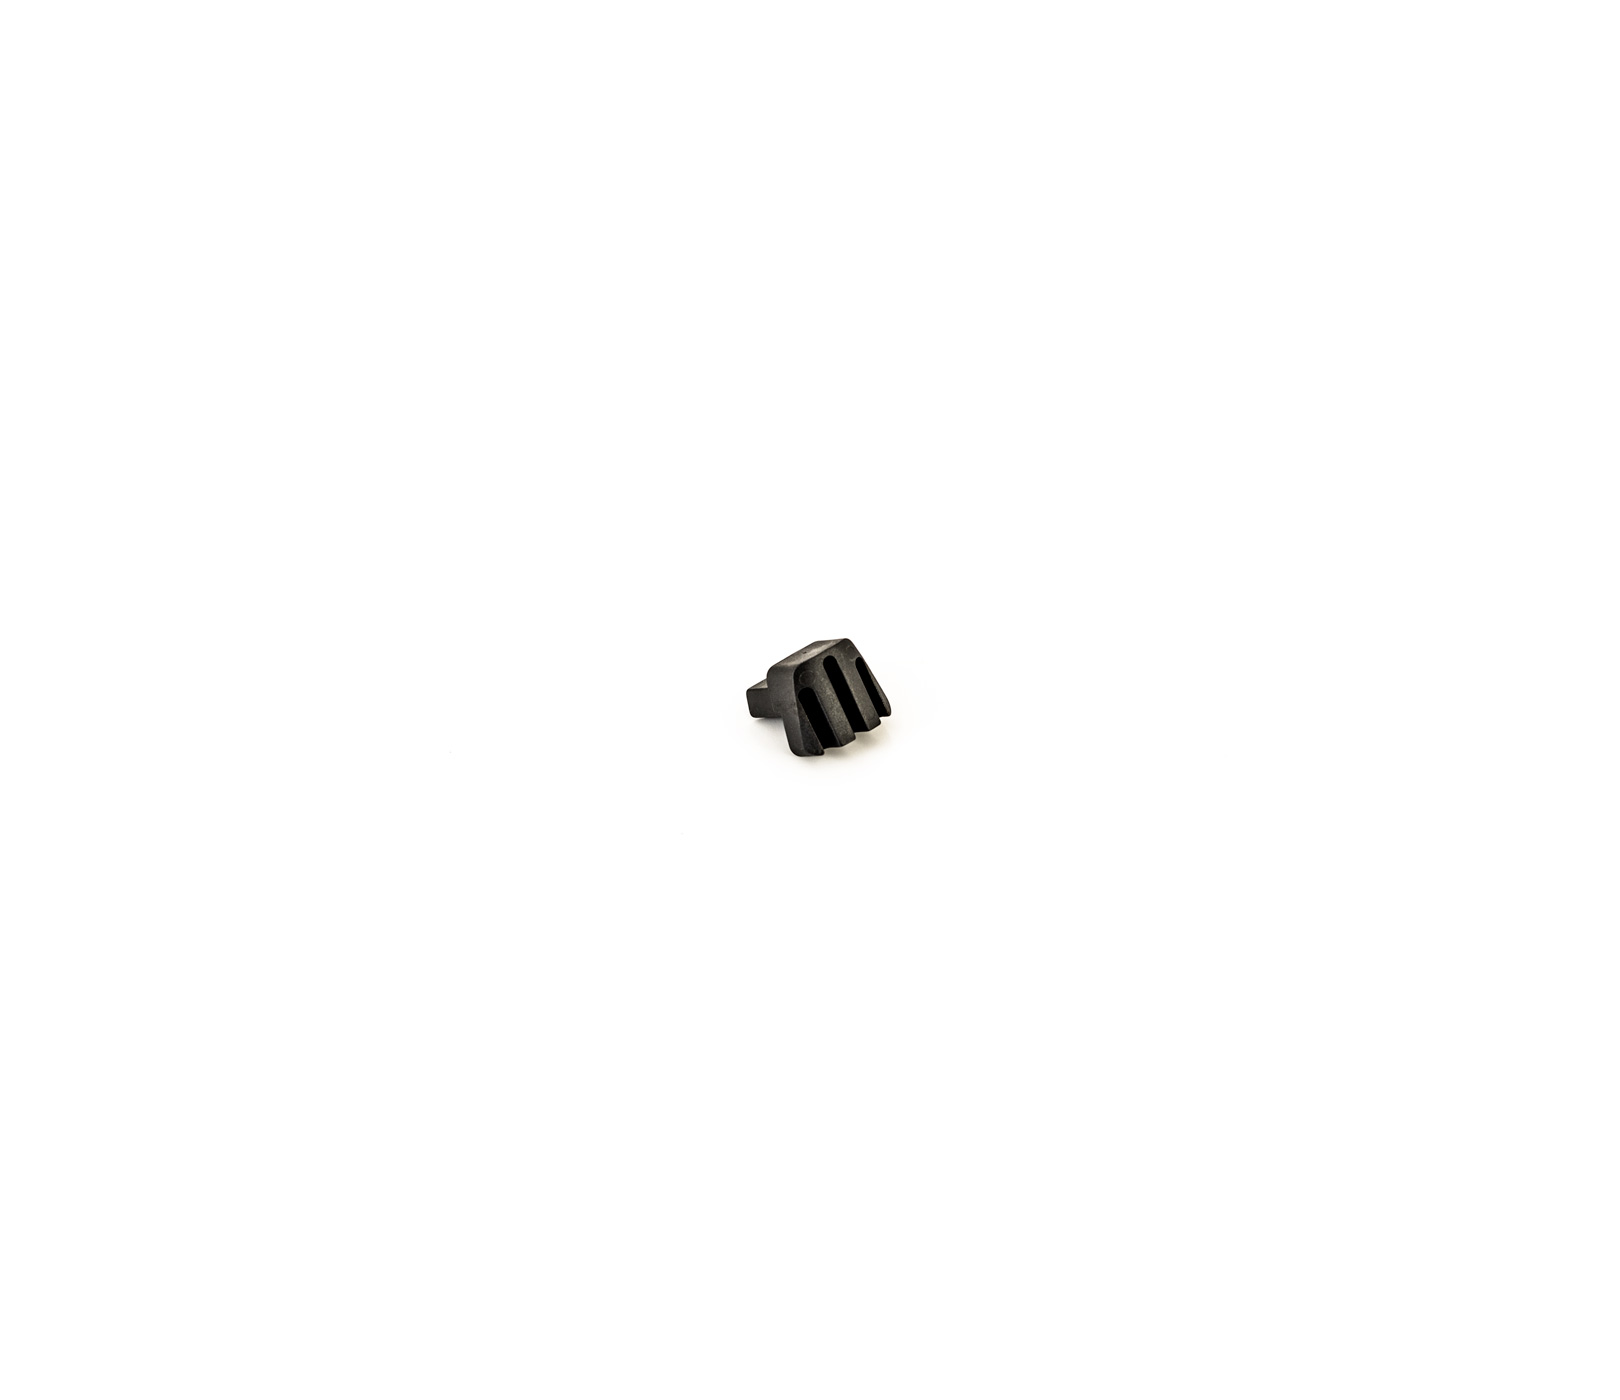 ORDU OMR MECHANICAL TOP TUBE CABLE STOP INSERT